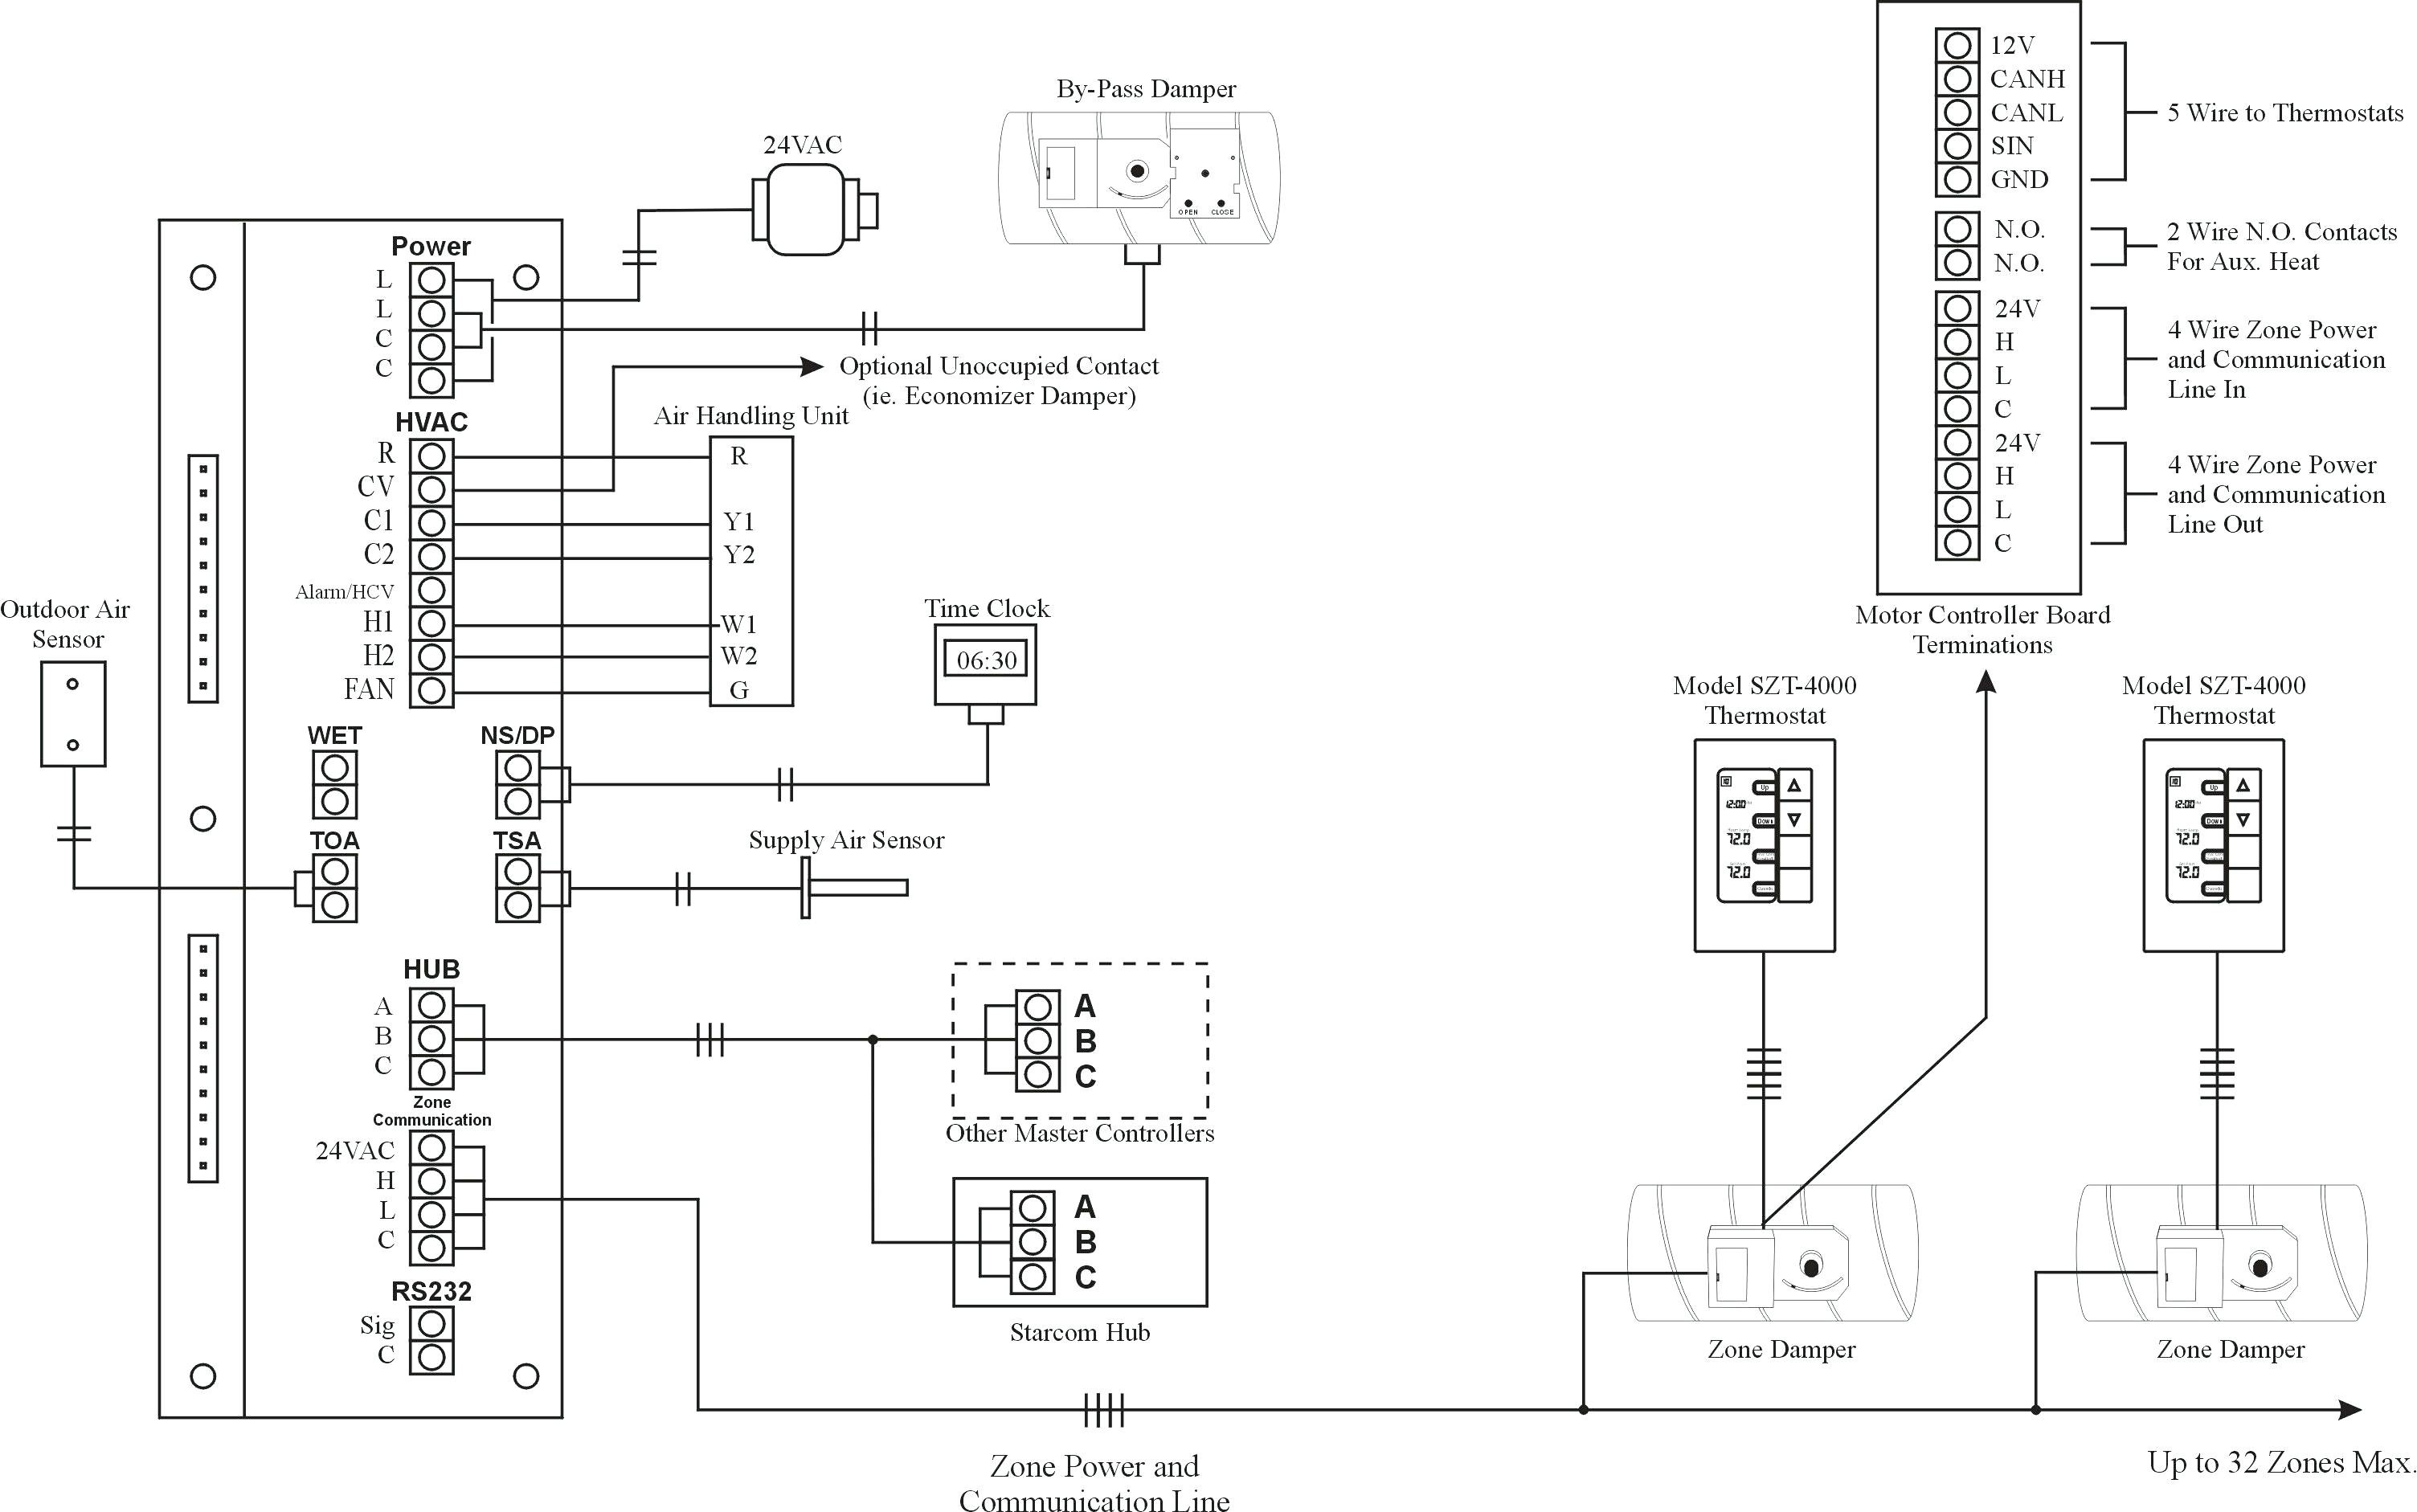 Fci Lcd 7100 Wiring Diagram Free Wiring Diagram